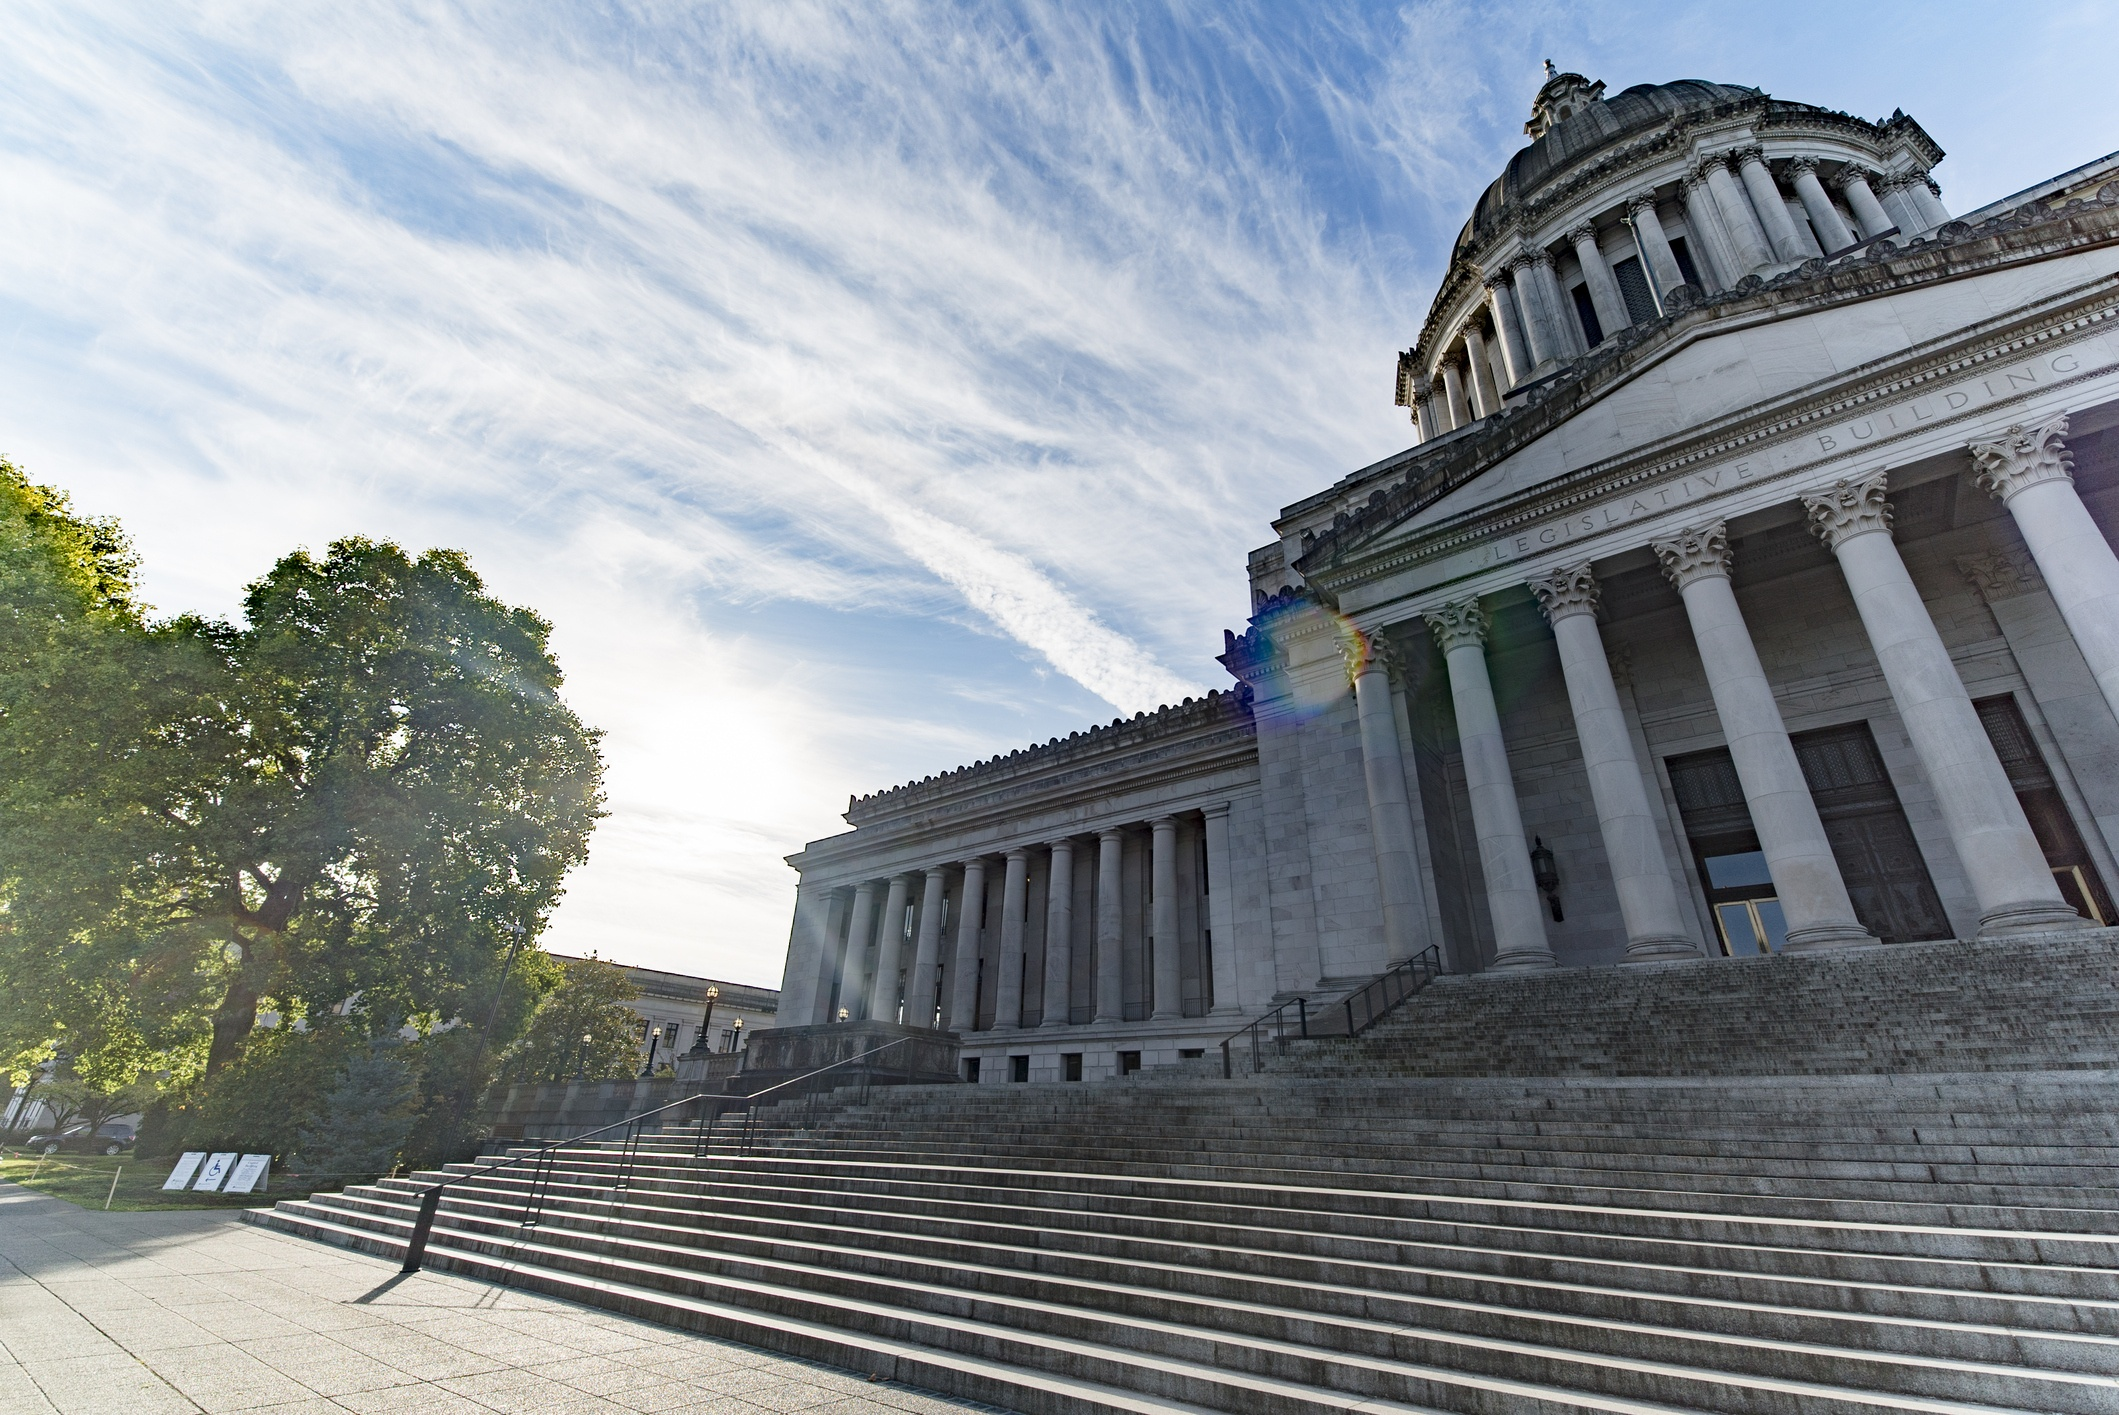 The Washington State Capitol building under a partly cloudy sky